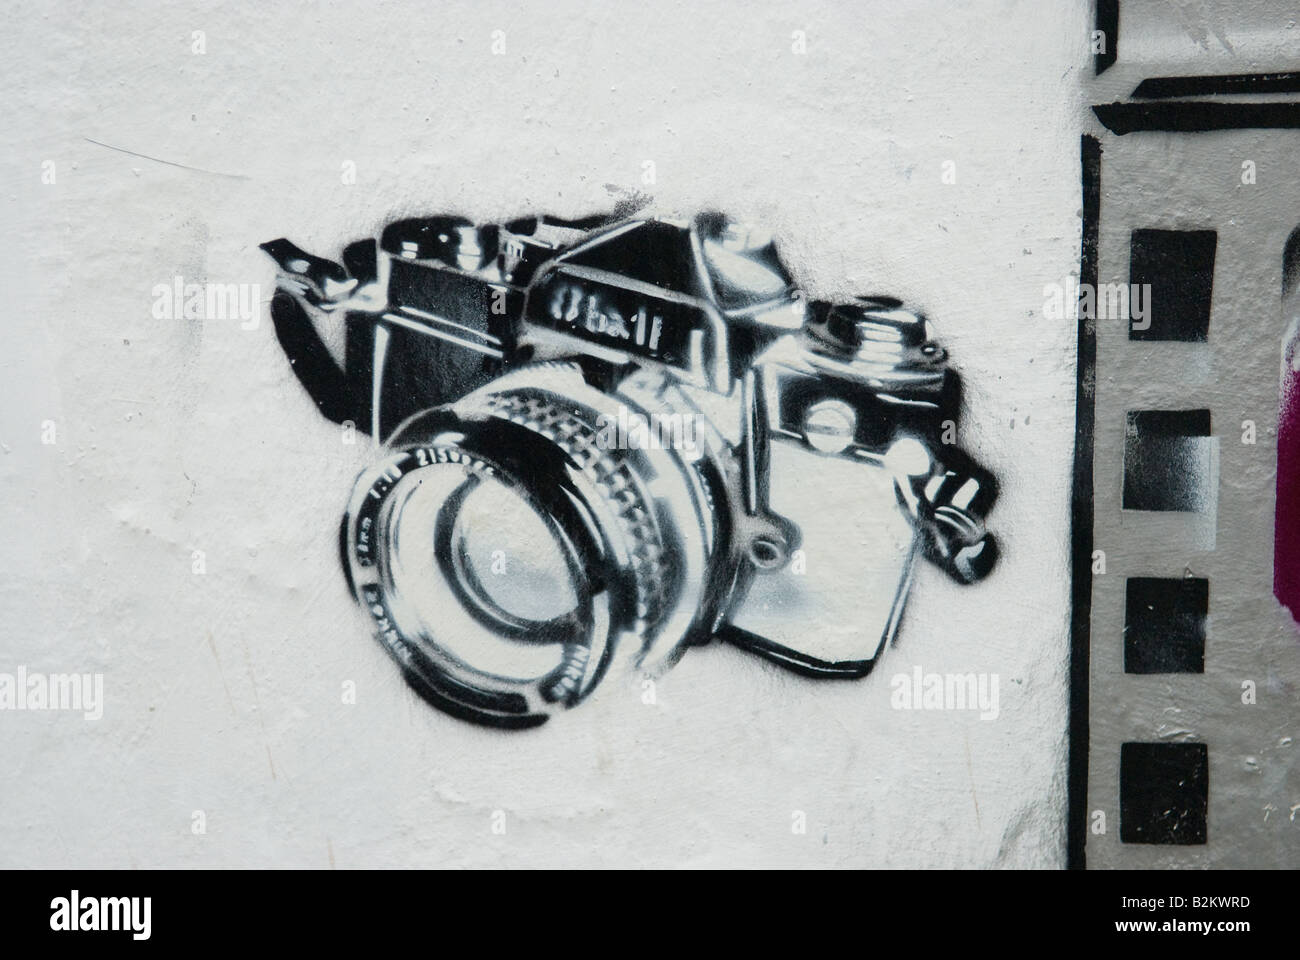 Camera Stencil Graffiti London - Stock Image